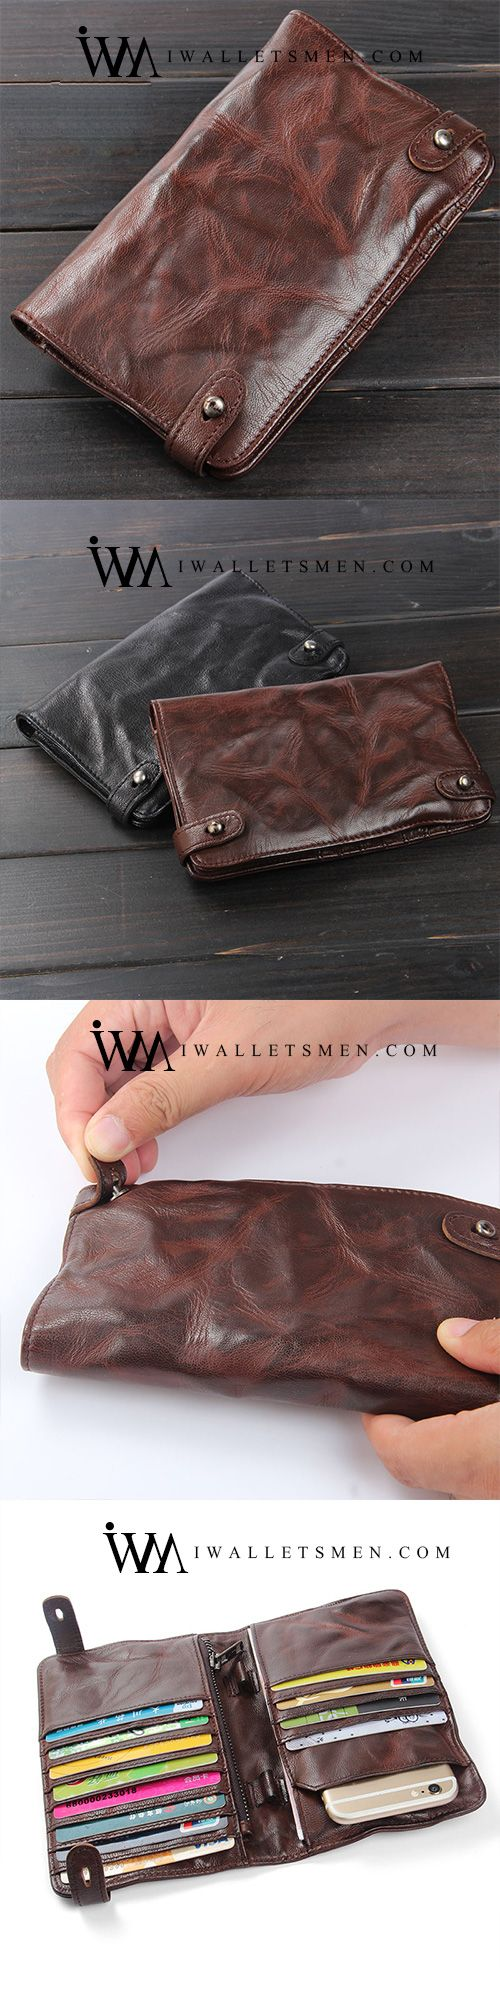 Handmade Leather Mens Cool Long Leather Wallet Bifold Clutch Wallet for Men QUICK VIEWSALE -22% HANDMADE LEATHER MENS COOL LONG LEATHER WALLET BIFOLD CLUTCH WALLET FOR MEN